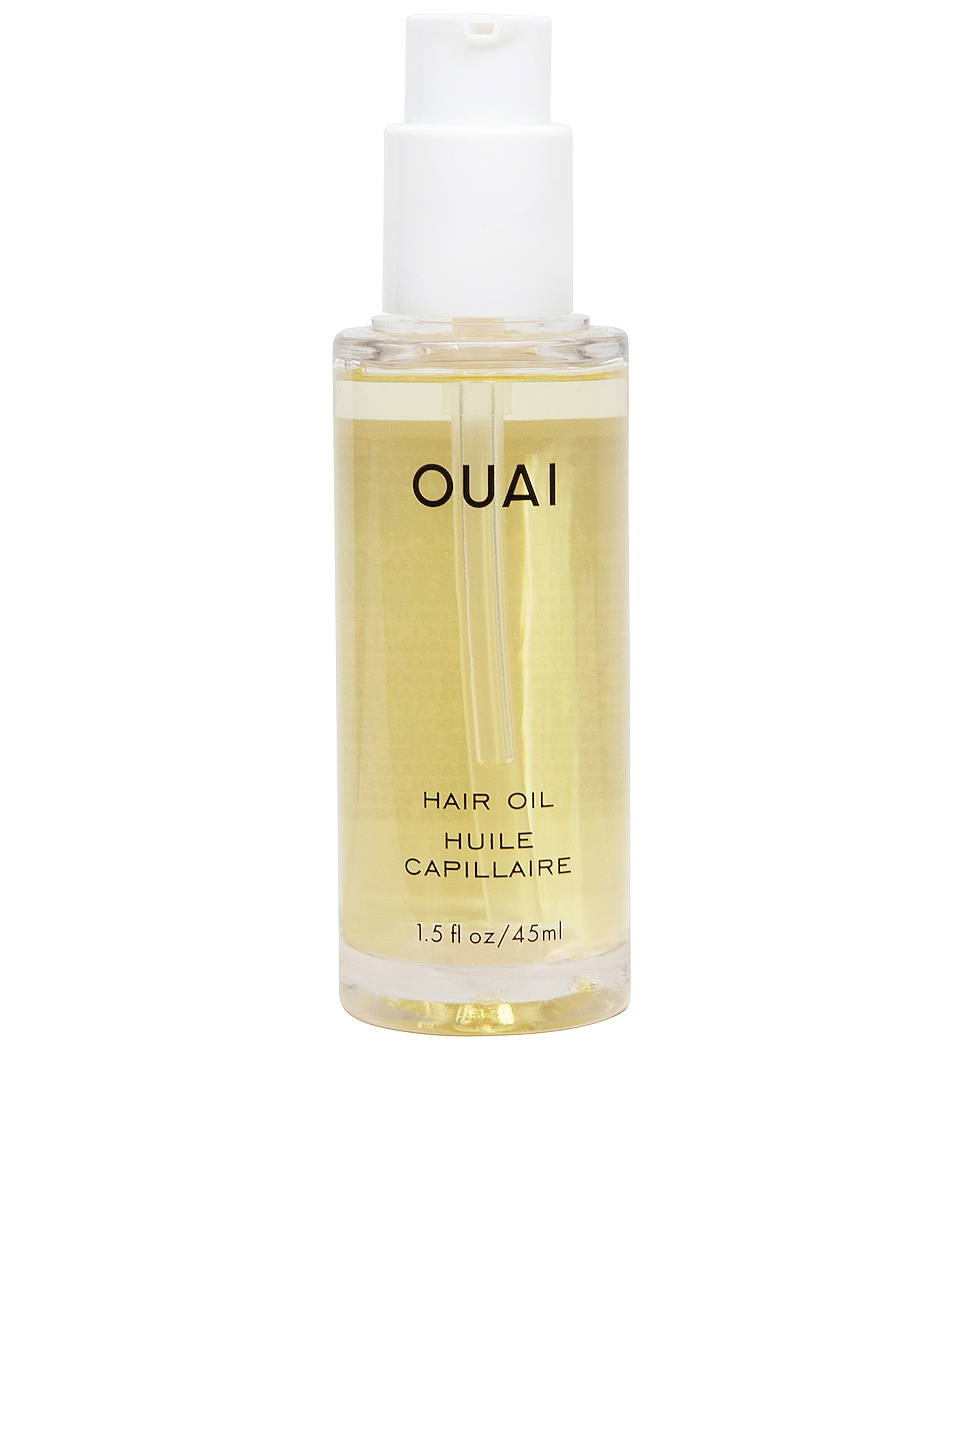 OUAI Hair Oil